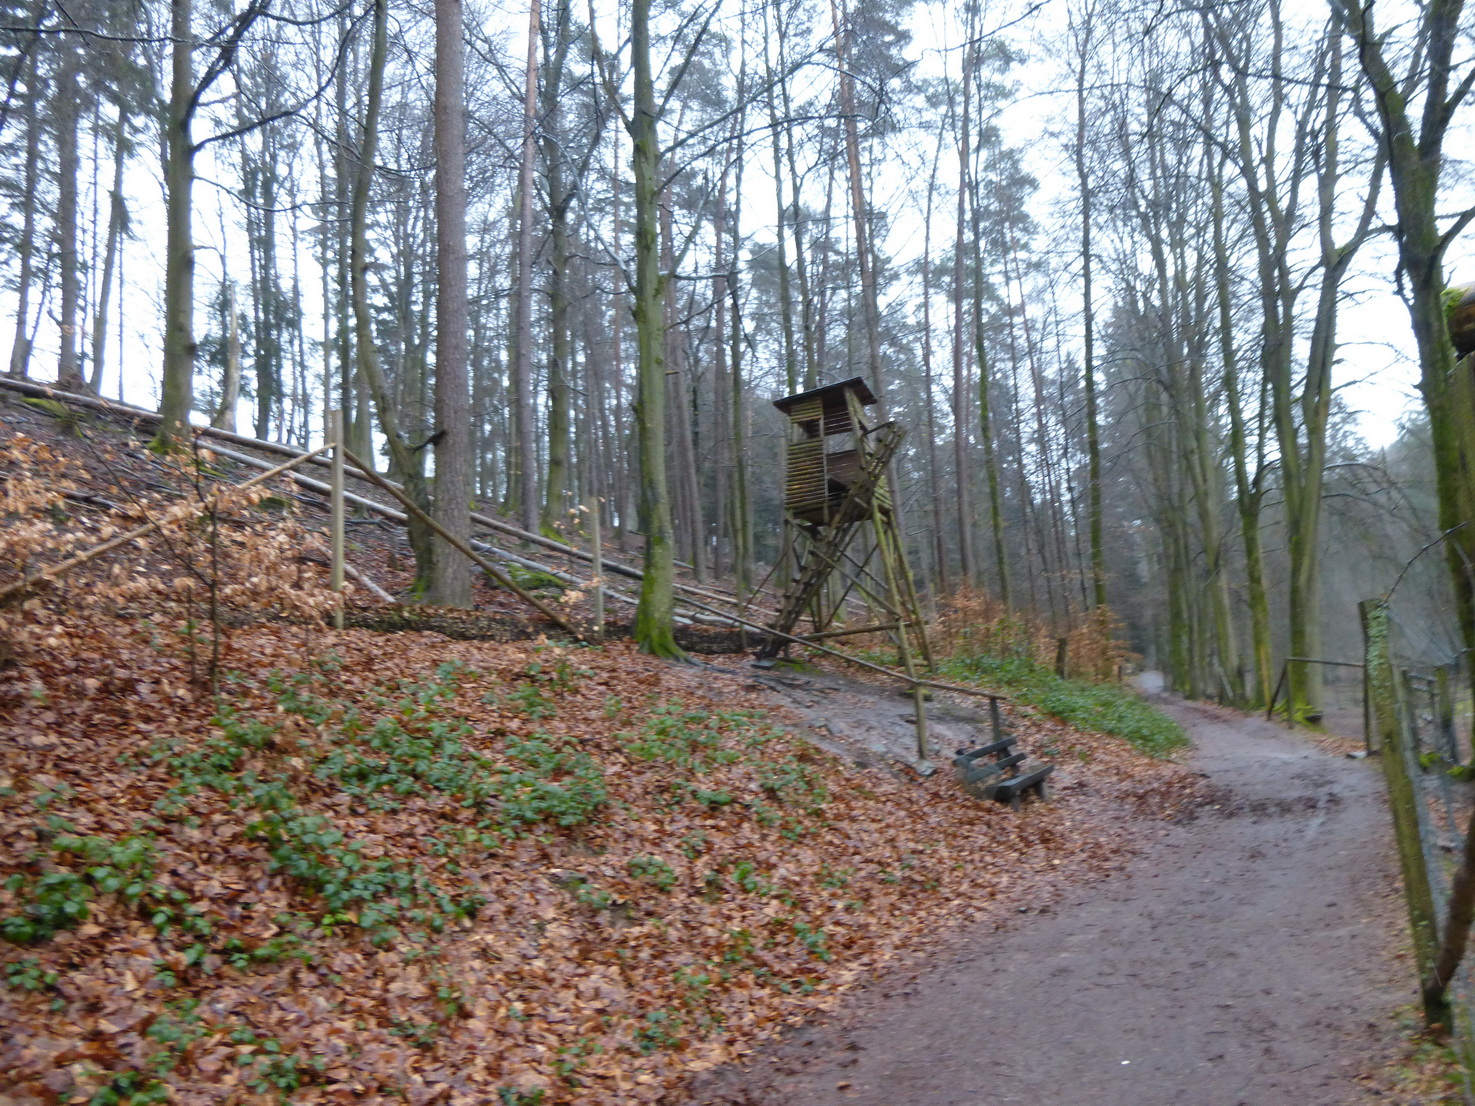 0215 Odenwald 8